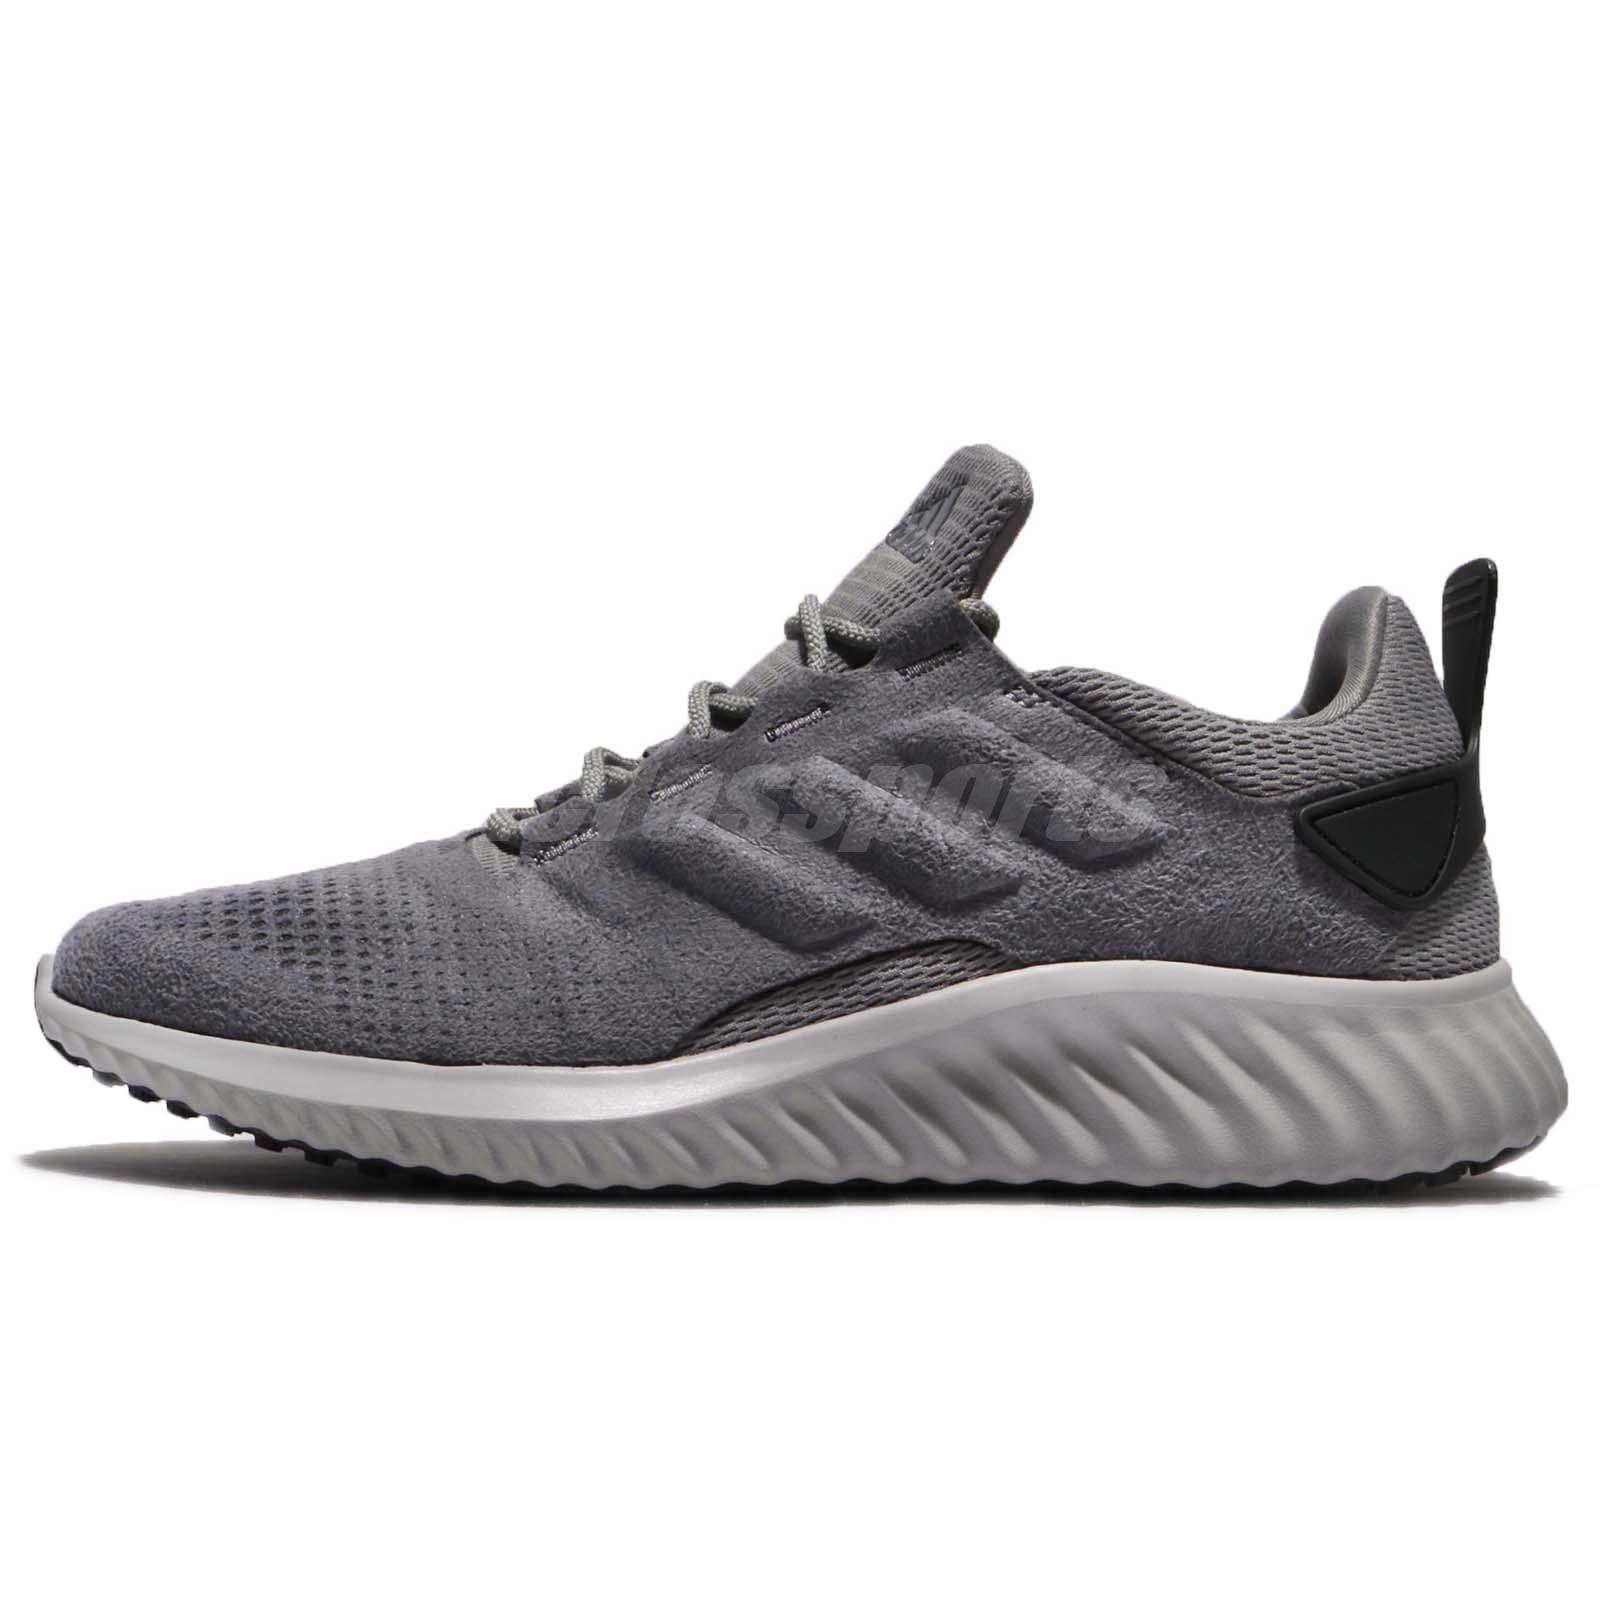 abfb74f7e5f79 adidas Alphabounce CR M Grey Black Men Running Training Shoes Sneakers  DB1676